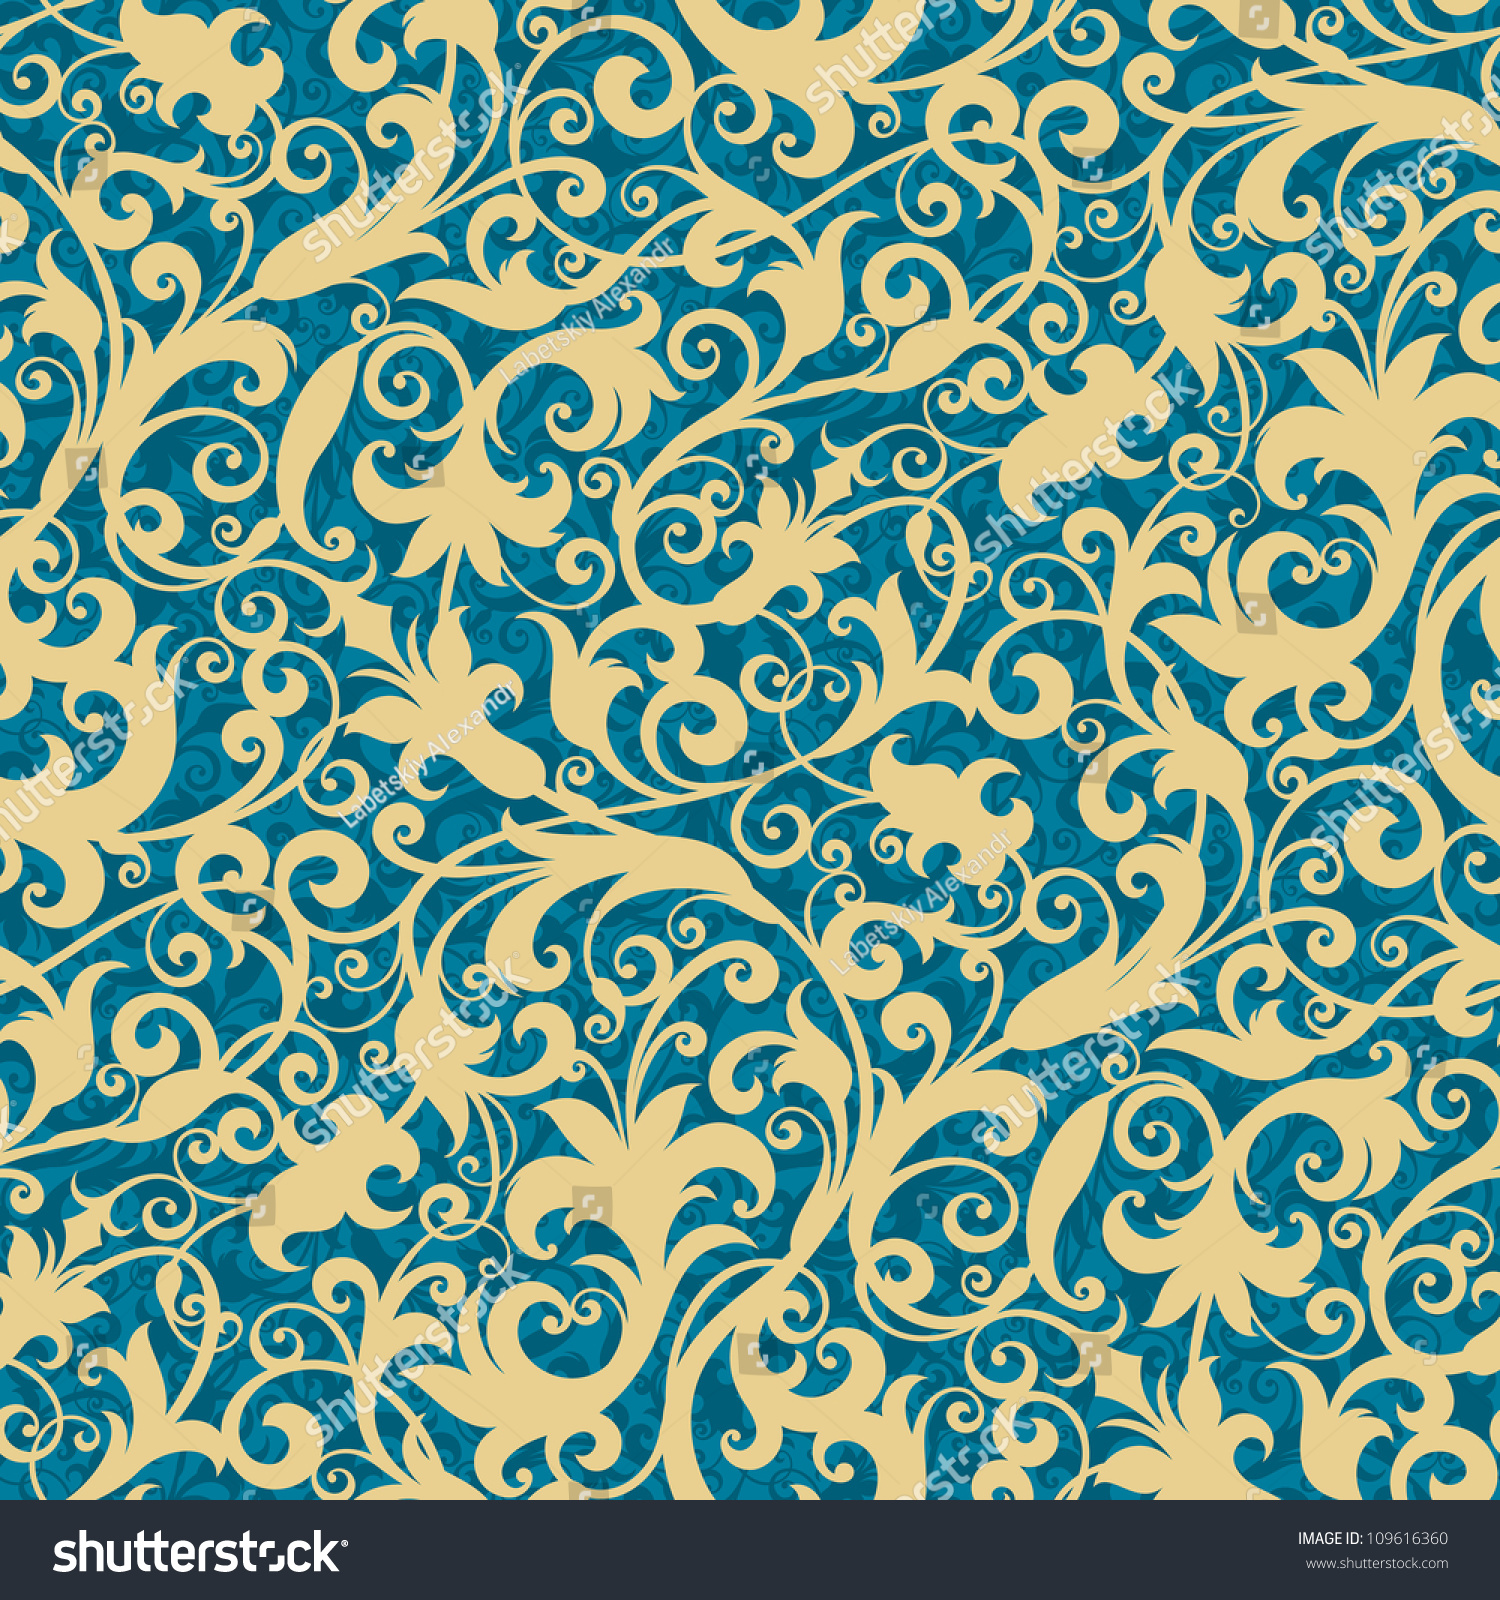 Seamless Background Floral Ornament Fashionable Modern Stock